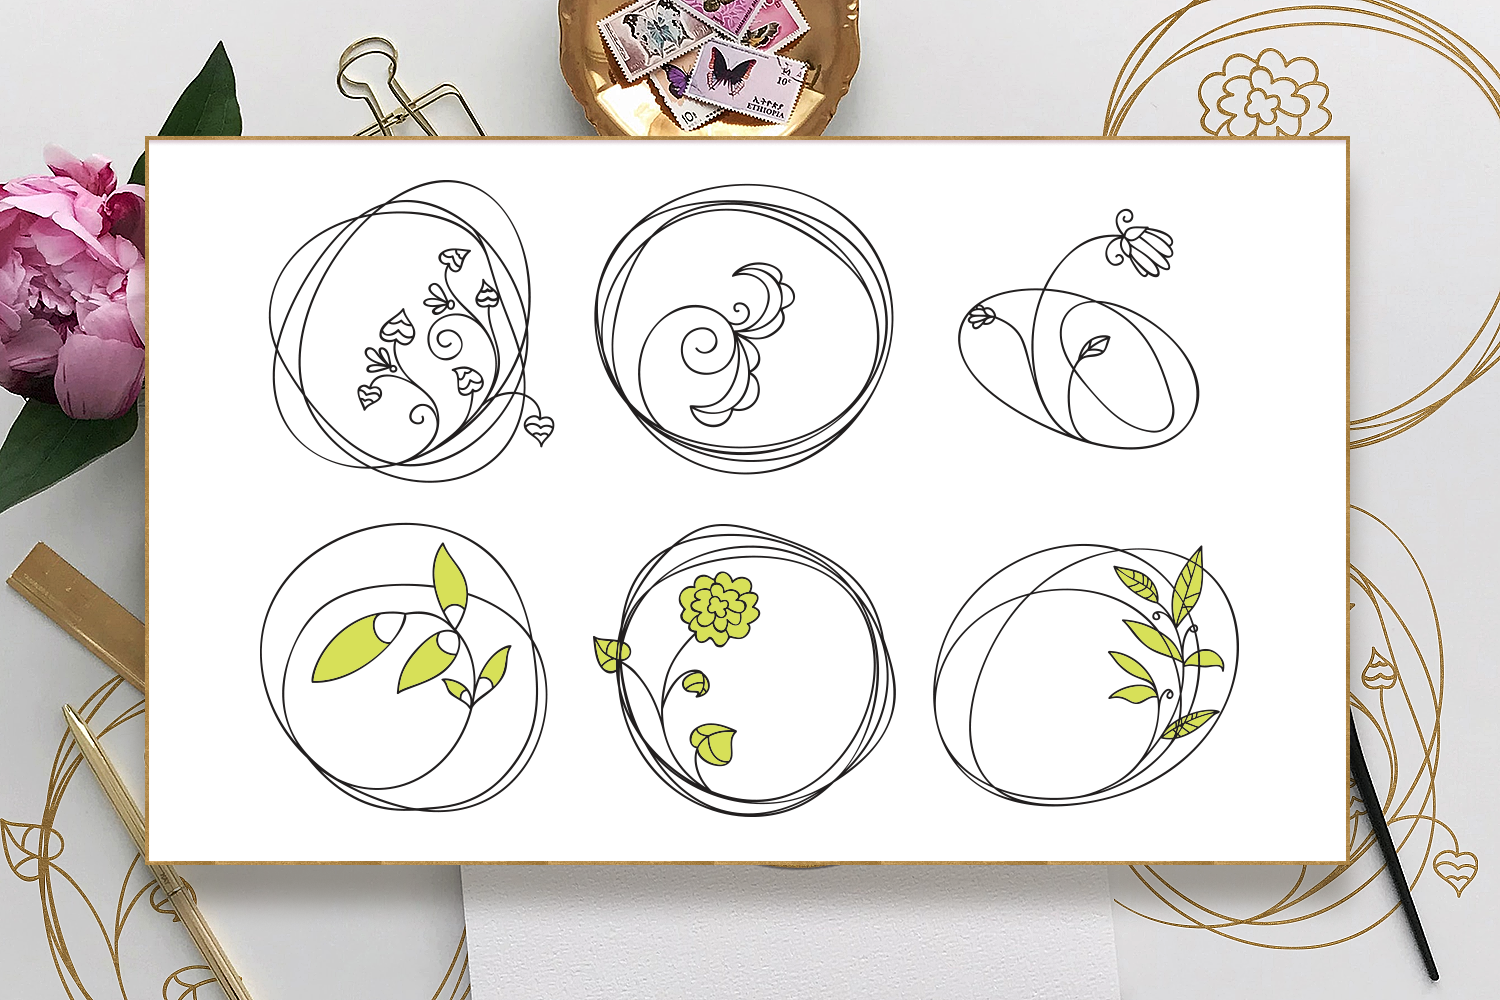 Foil Quill Floral Svg Files Pack With 21 Cut Files By Craft N Cuts